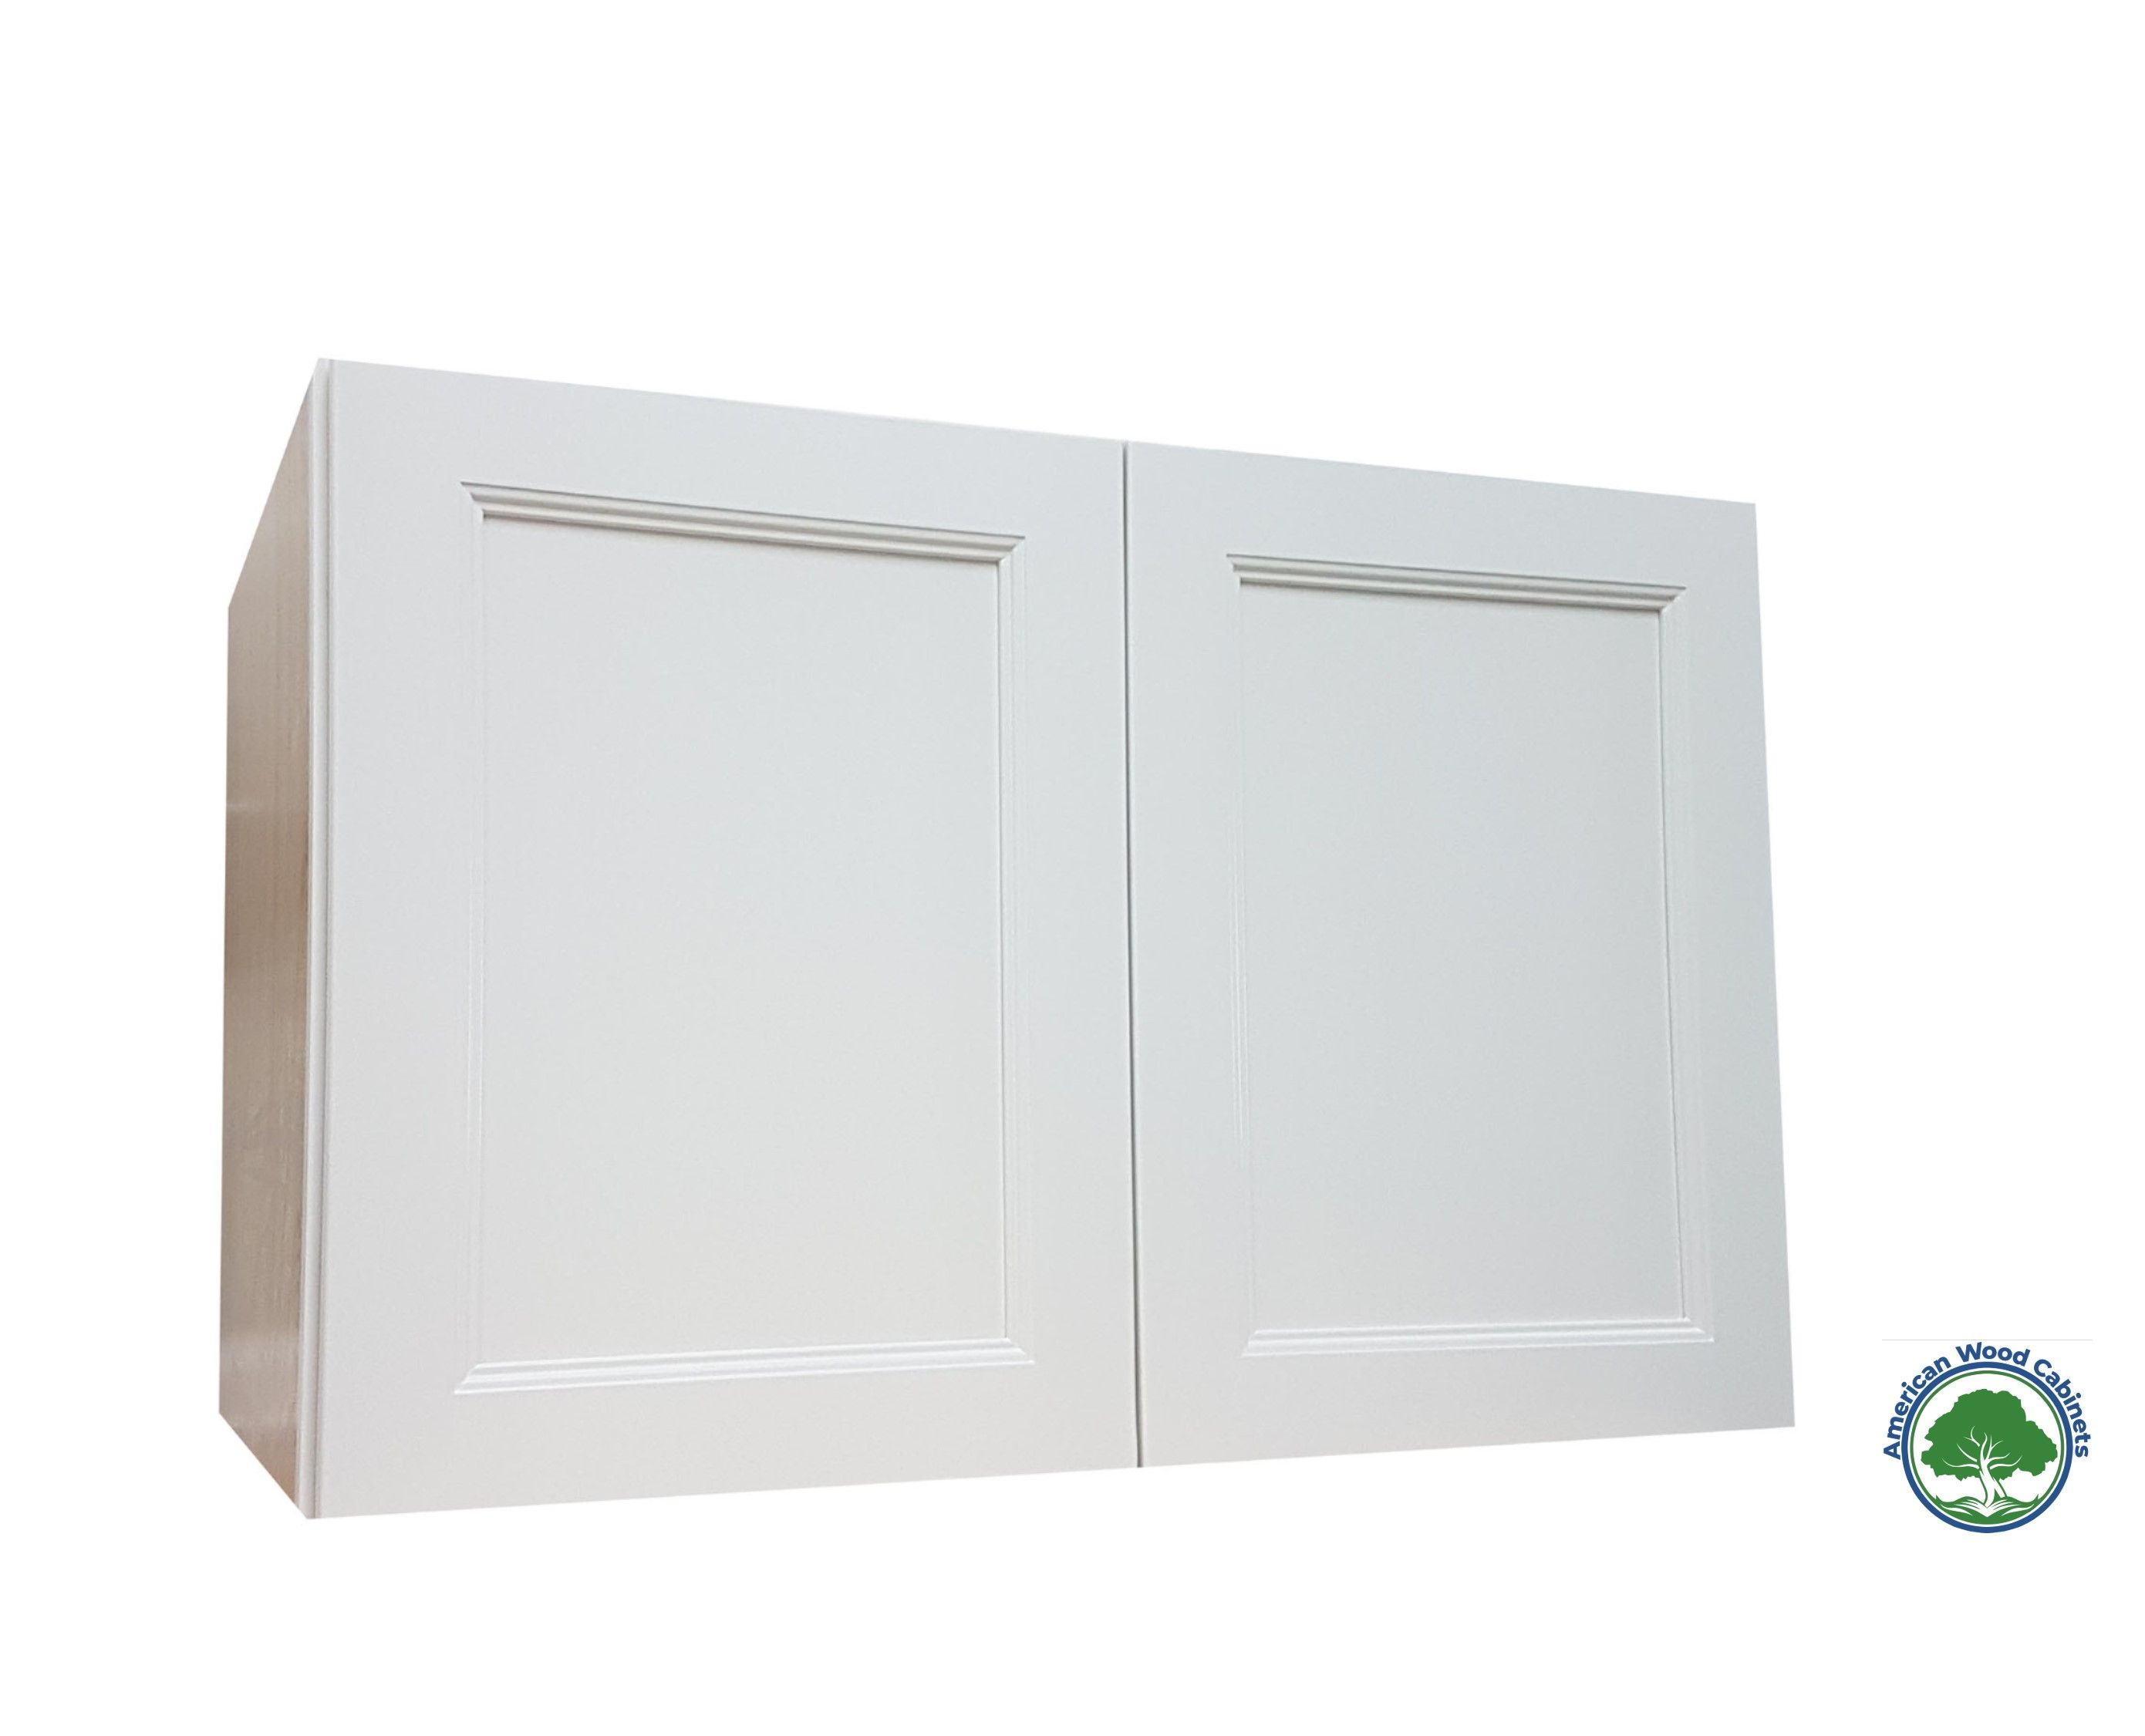 Factory Plaza Manufactures Kitchen Cabinets And Bathroom Vanities